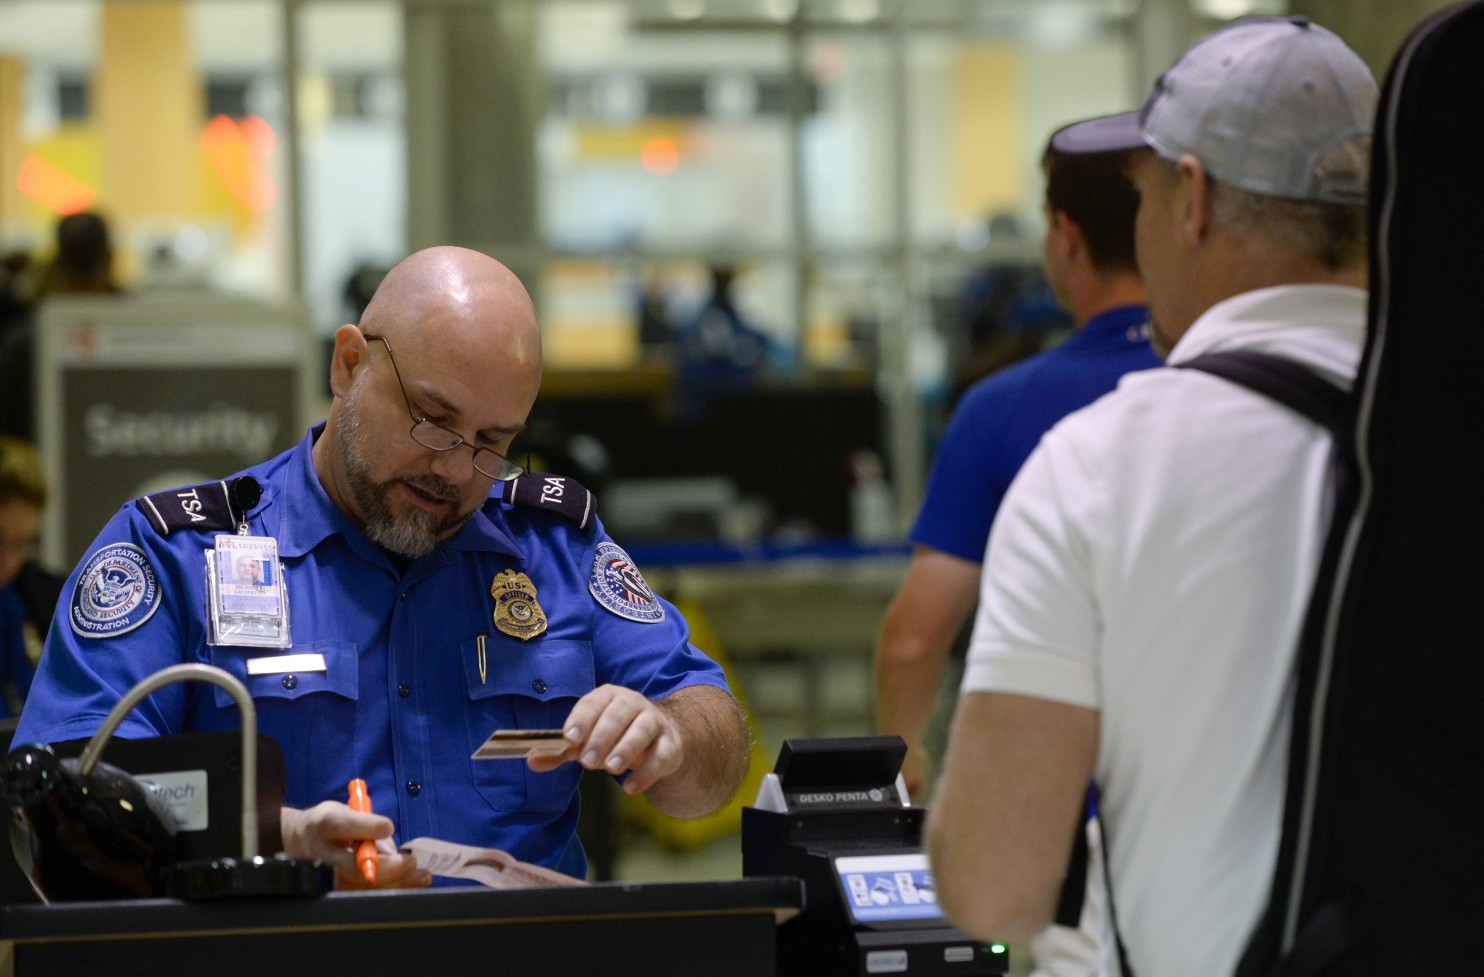 6 travel tips to help you fly through airport security 6 tips to help you fly through airport security